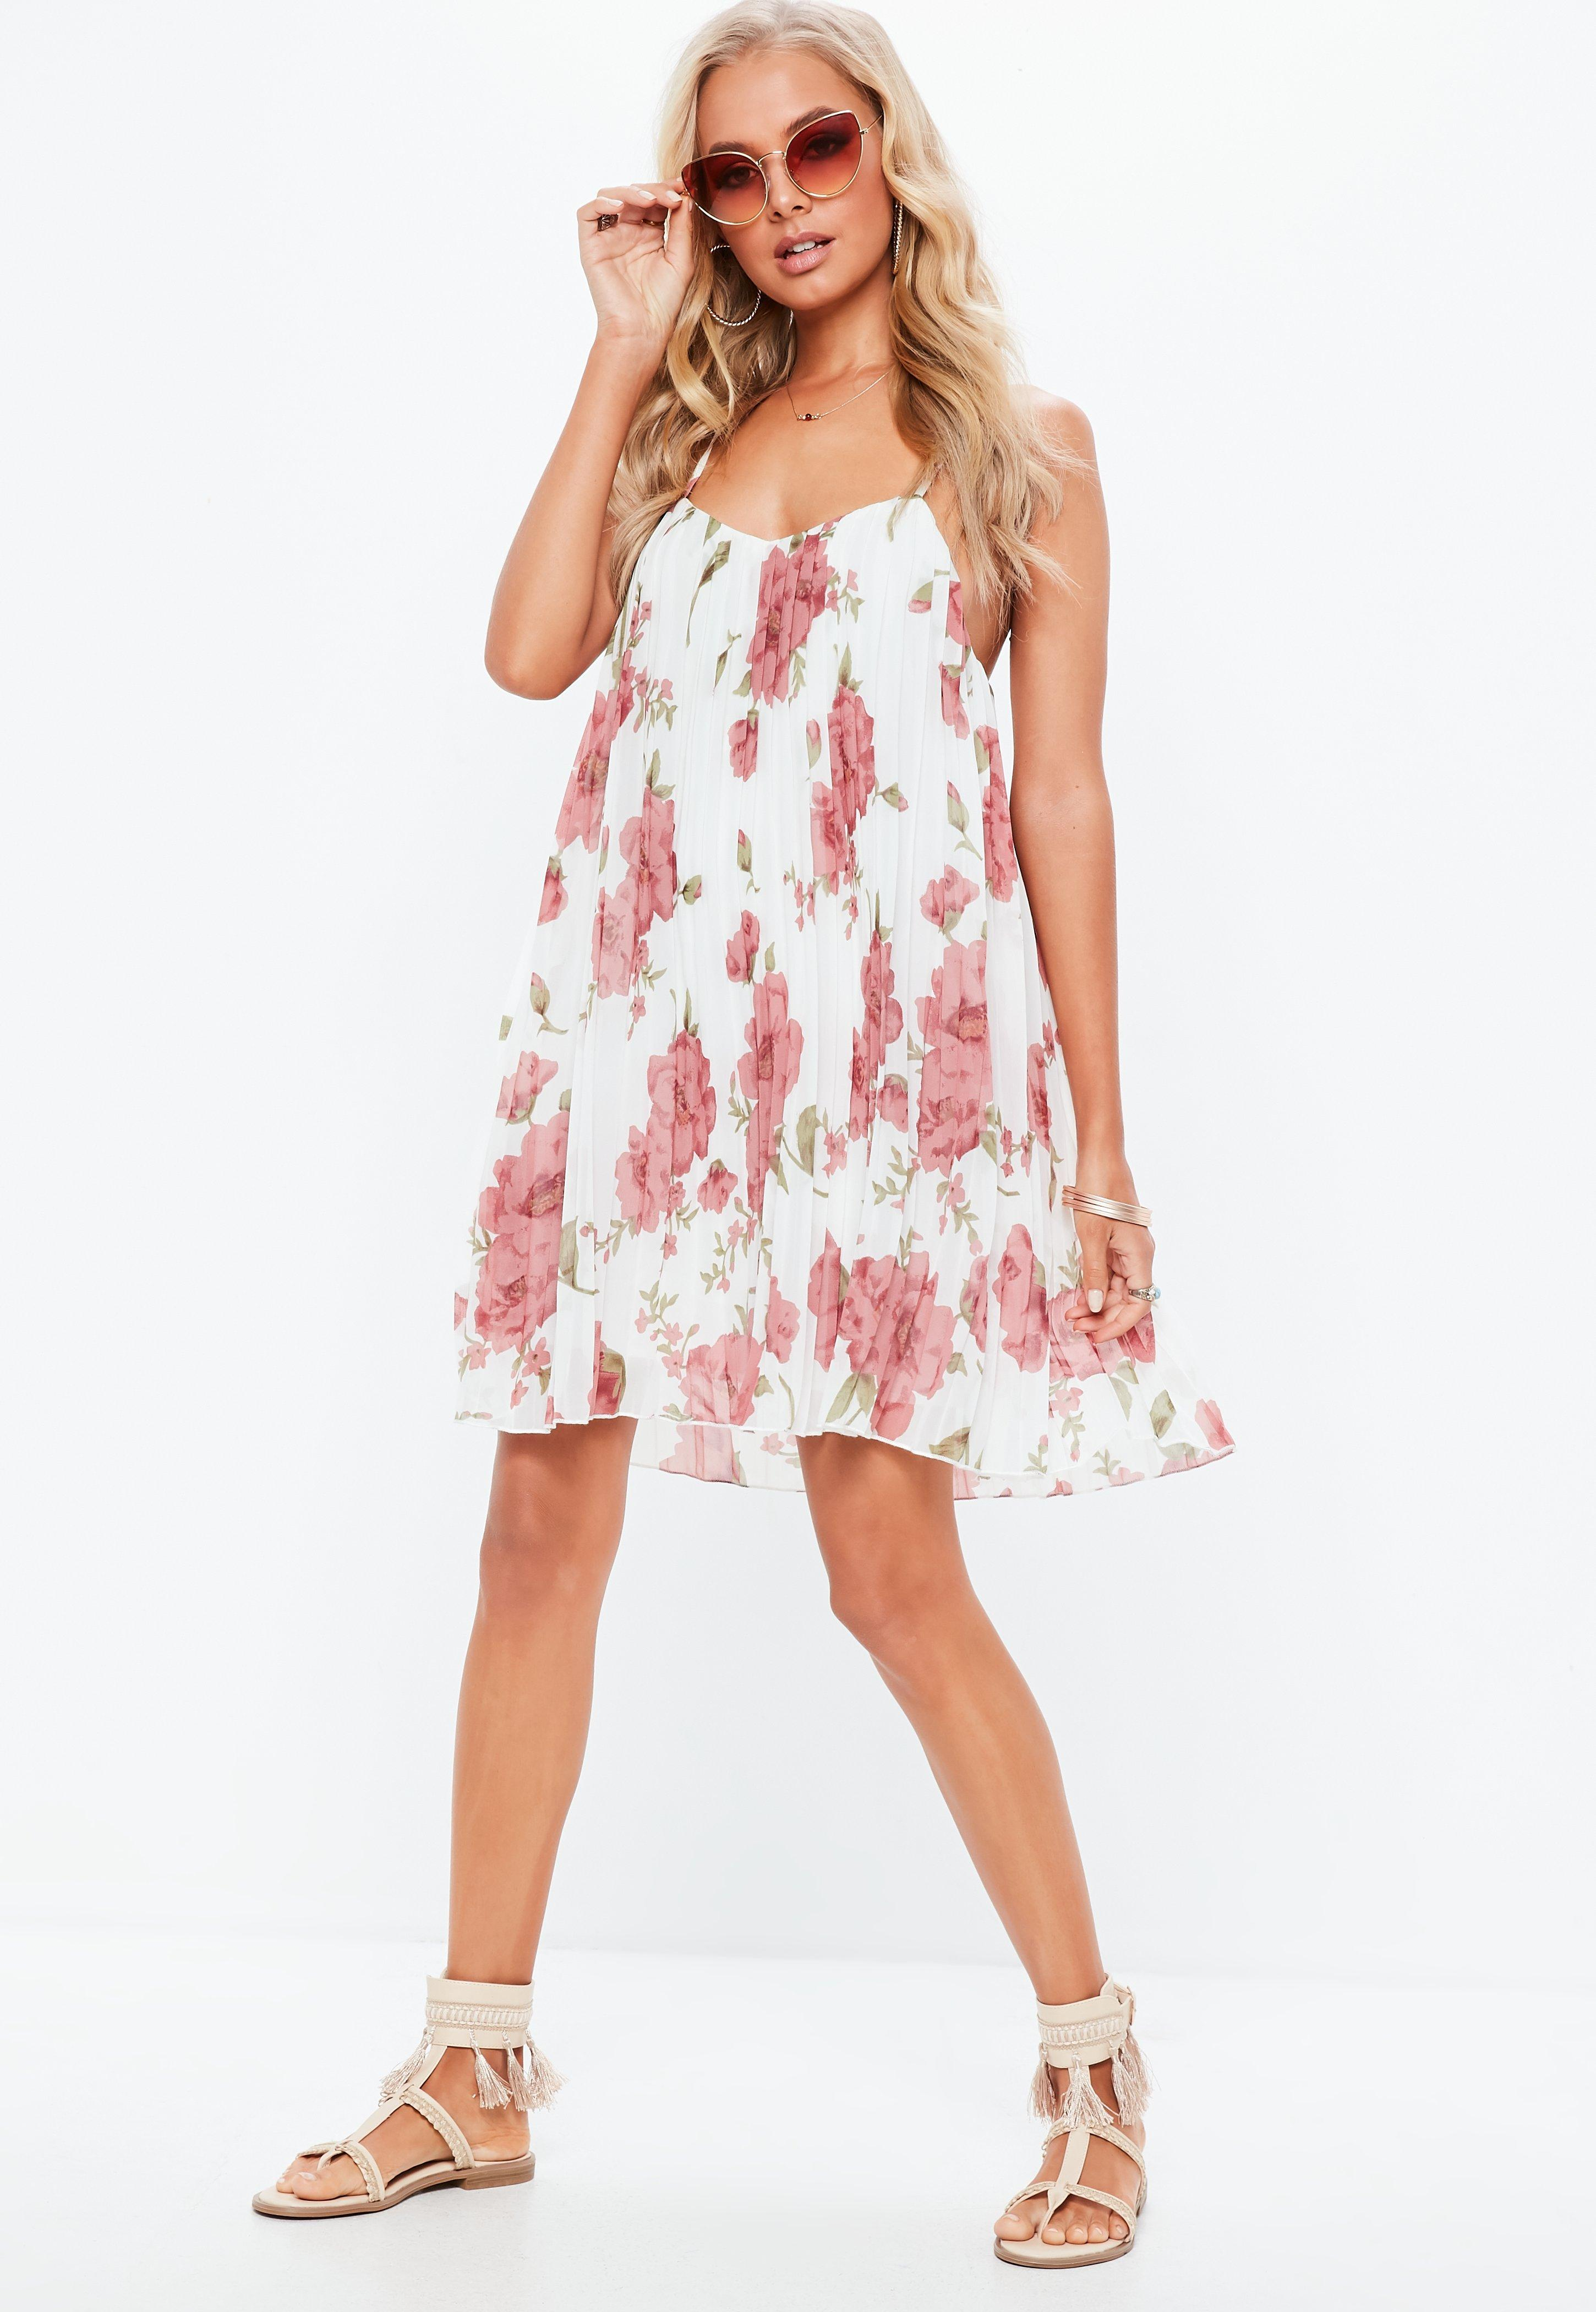 b34a216962f63 Lyst - Missguided White Floral Print Strappy Pleated Swing Dress in ...